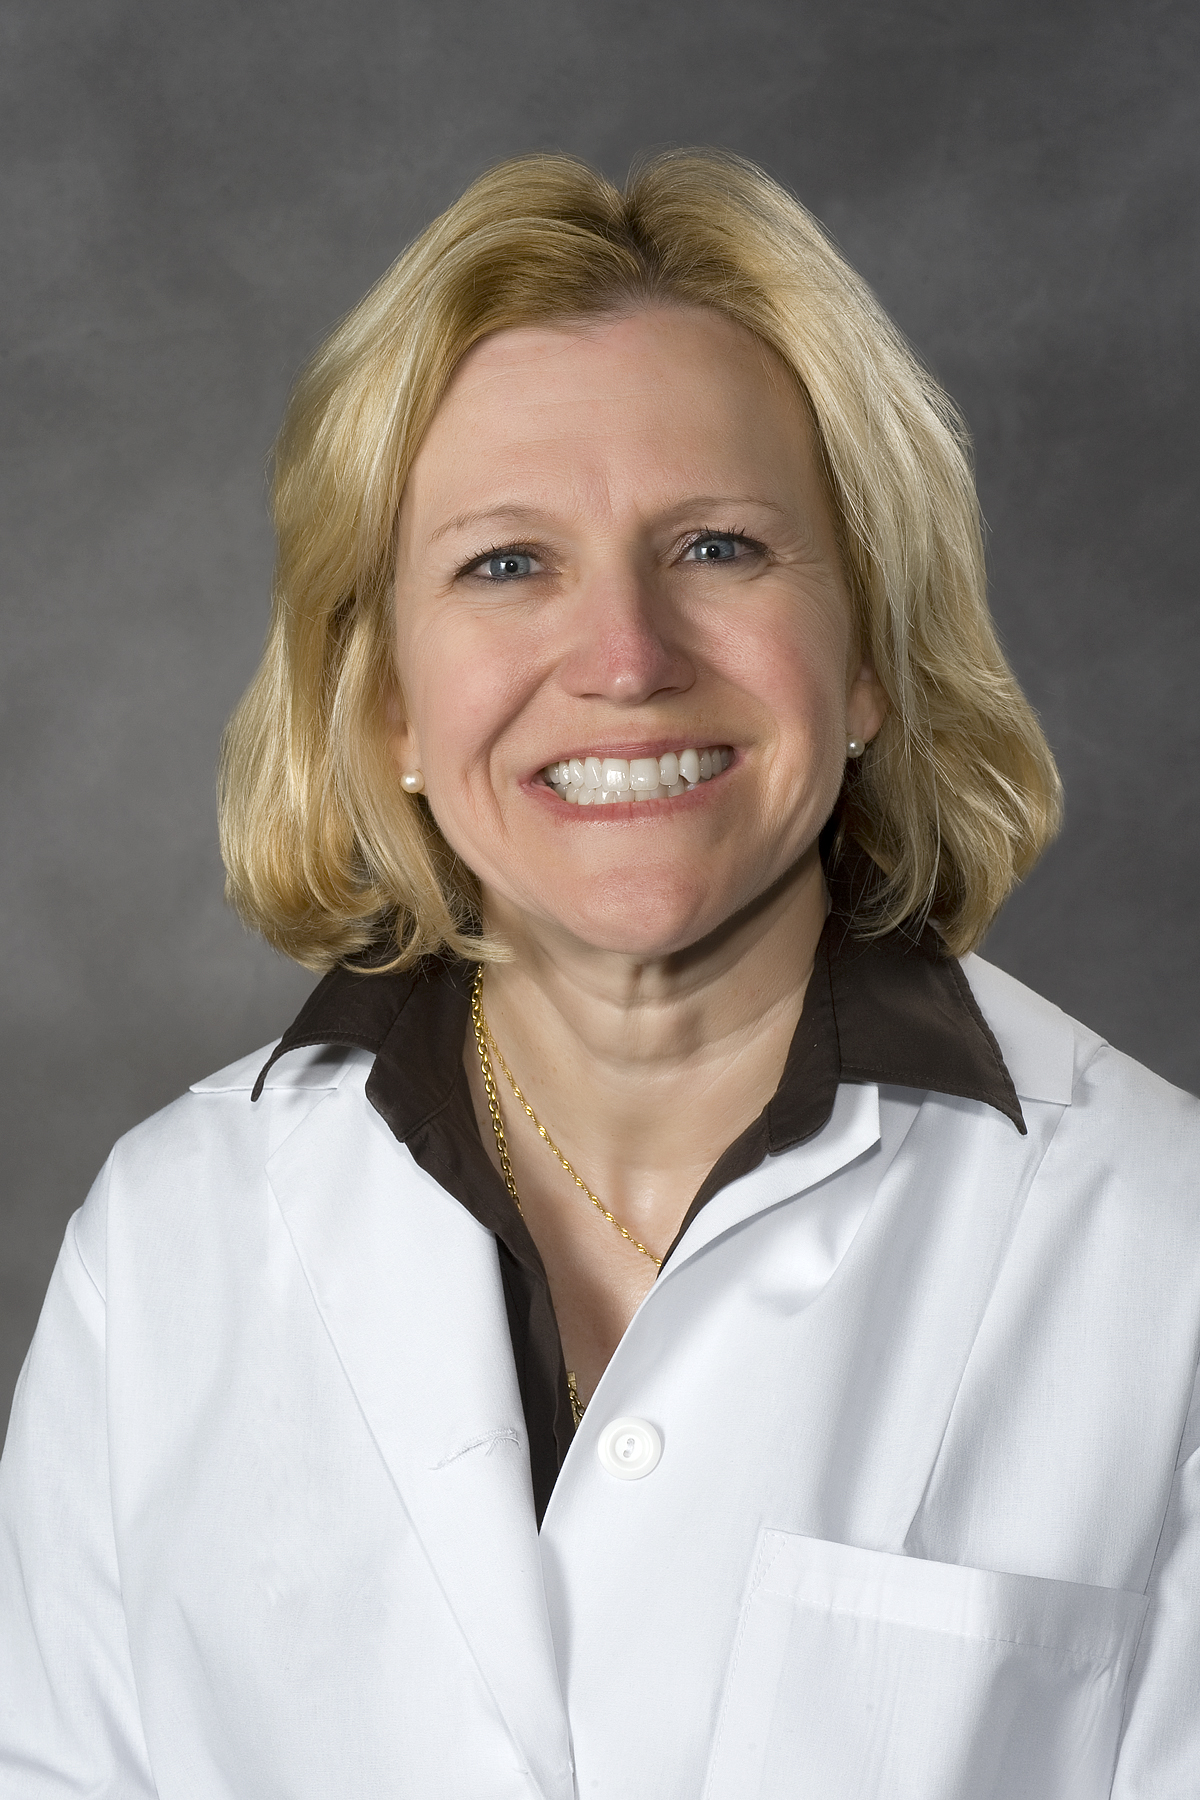 Robin L. Foster, M.D., MCV Physicians Distinguished Clinician Award